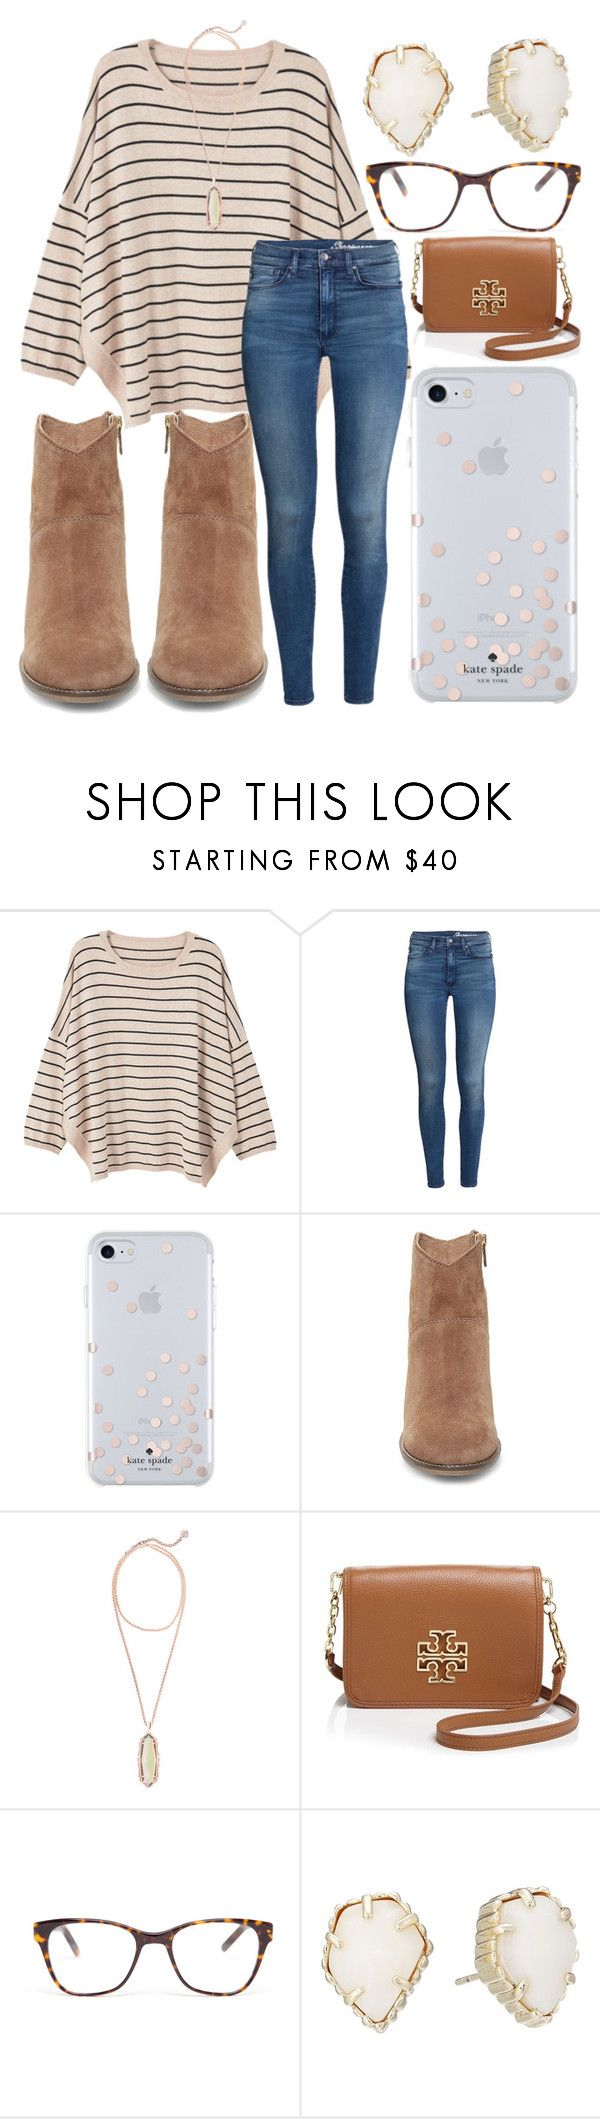 """""""Black Friday """" by jadenriley21 ❤ liked on Polyvore featuring MANGO, H&M, Kate Spade, Steve Madden, Kendra Scott, Tory Burch and Prism"""